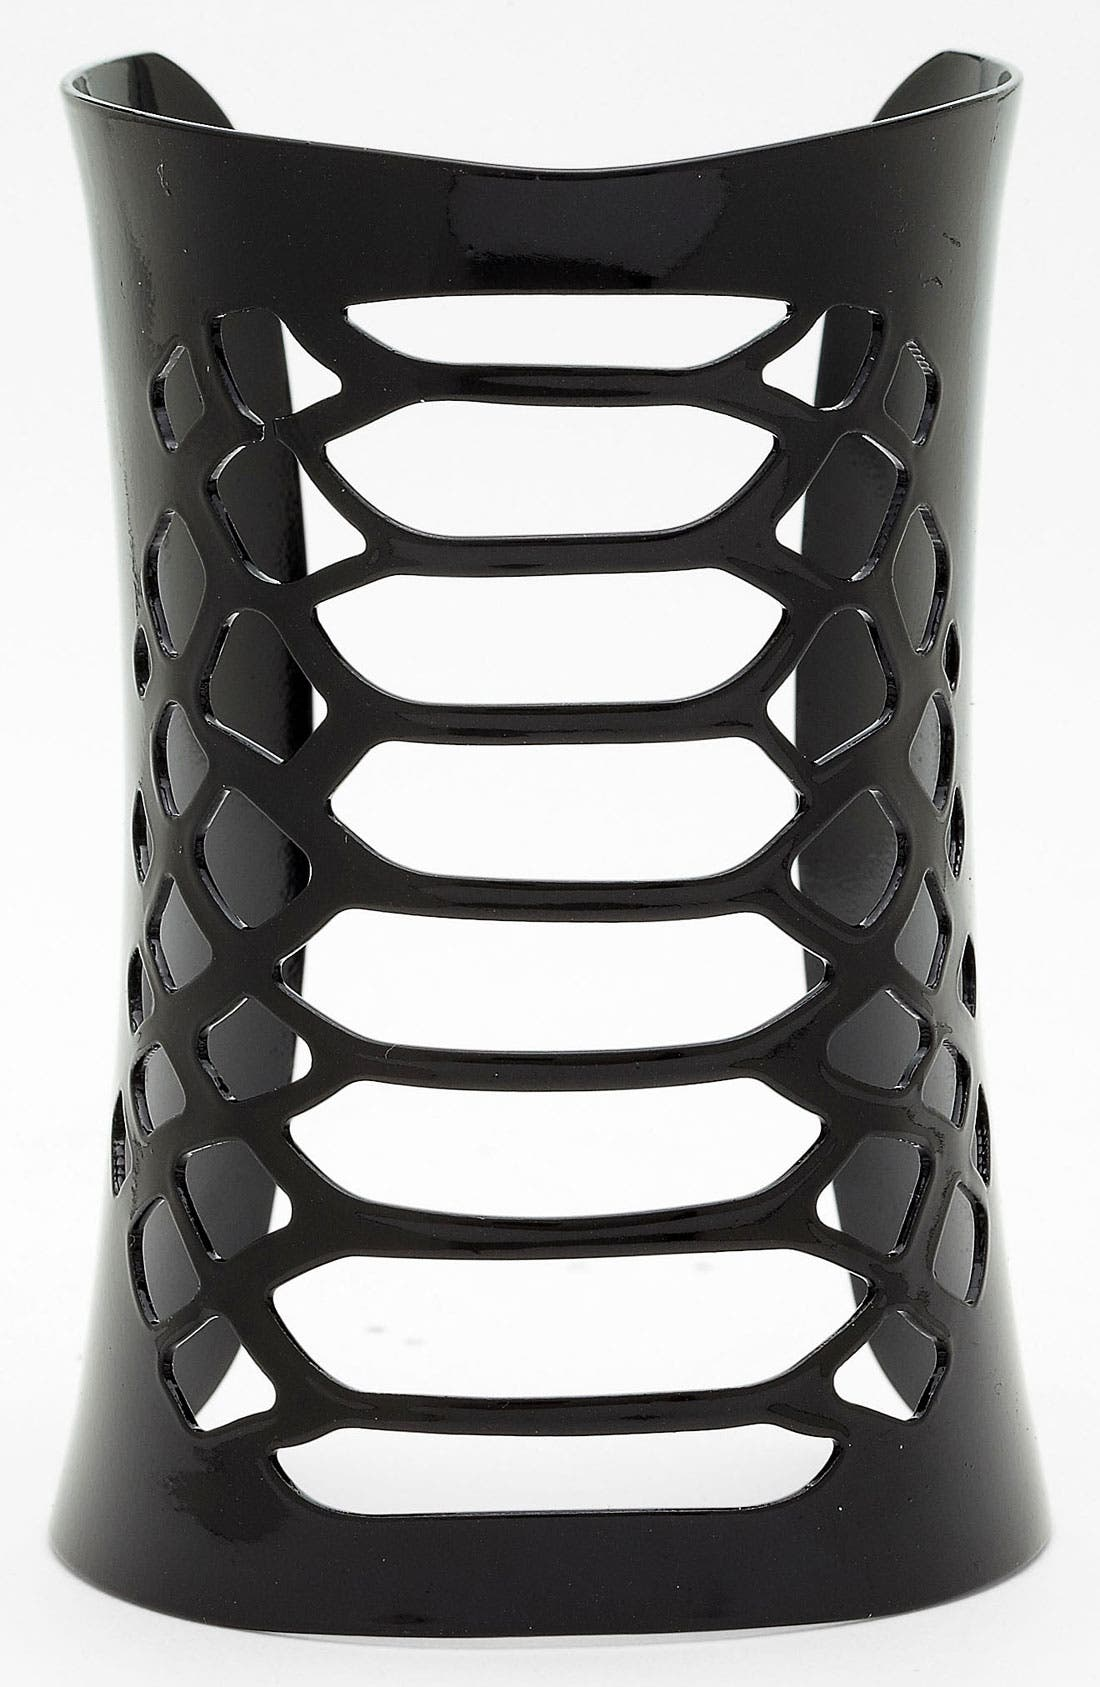 Alternate Image 1 Selected - Cara Accessories 'Python' Cuff